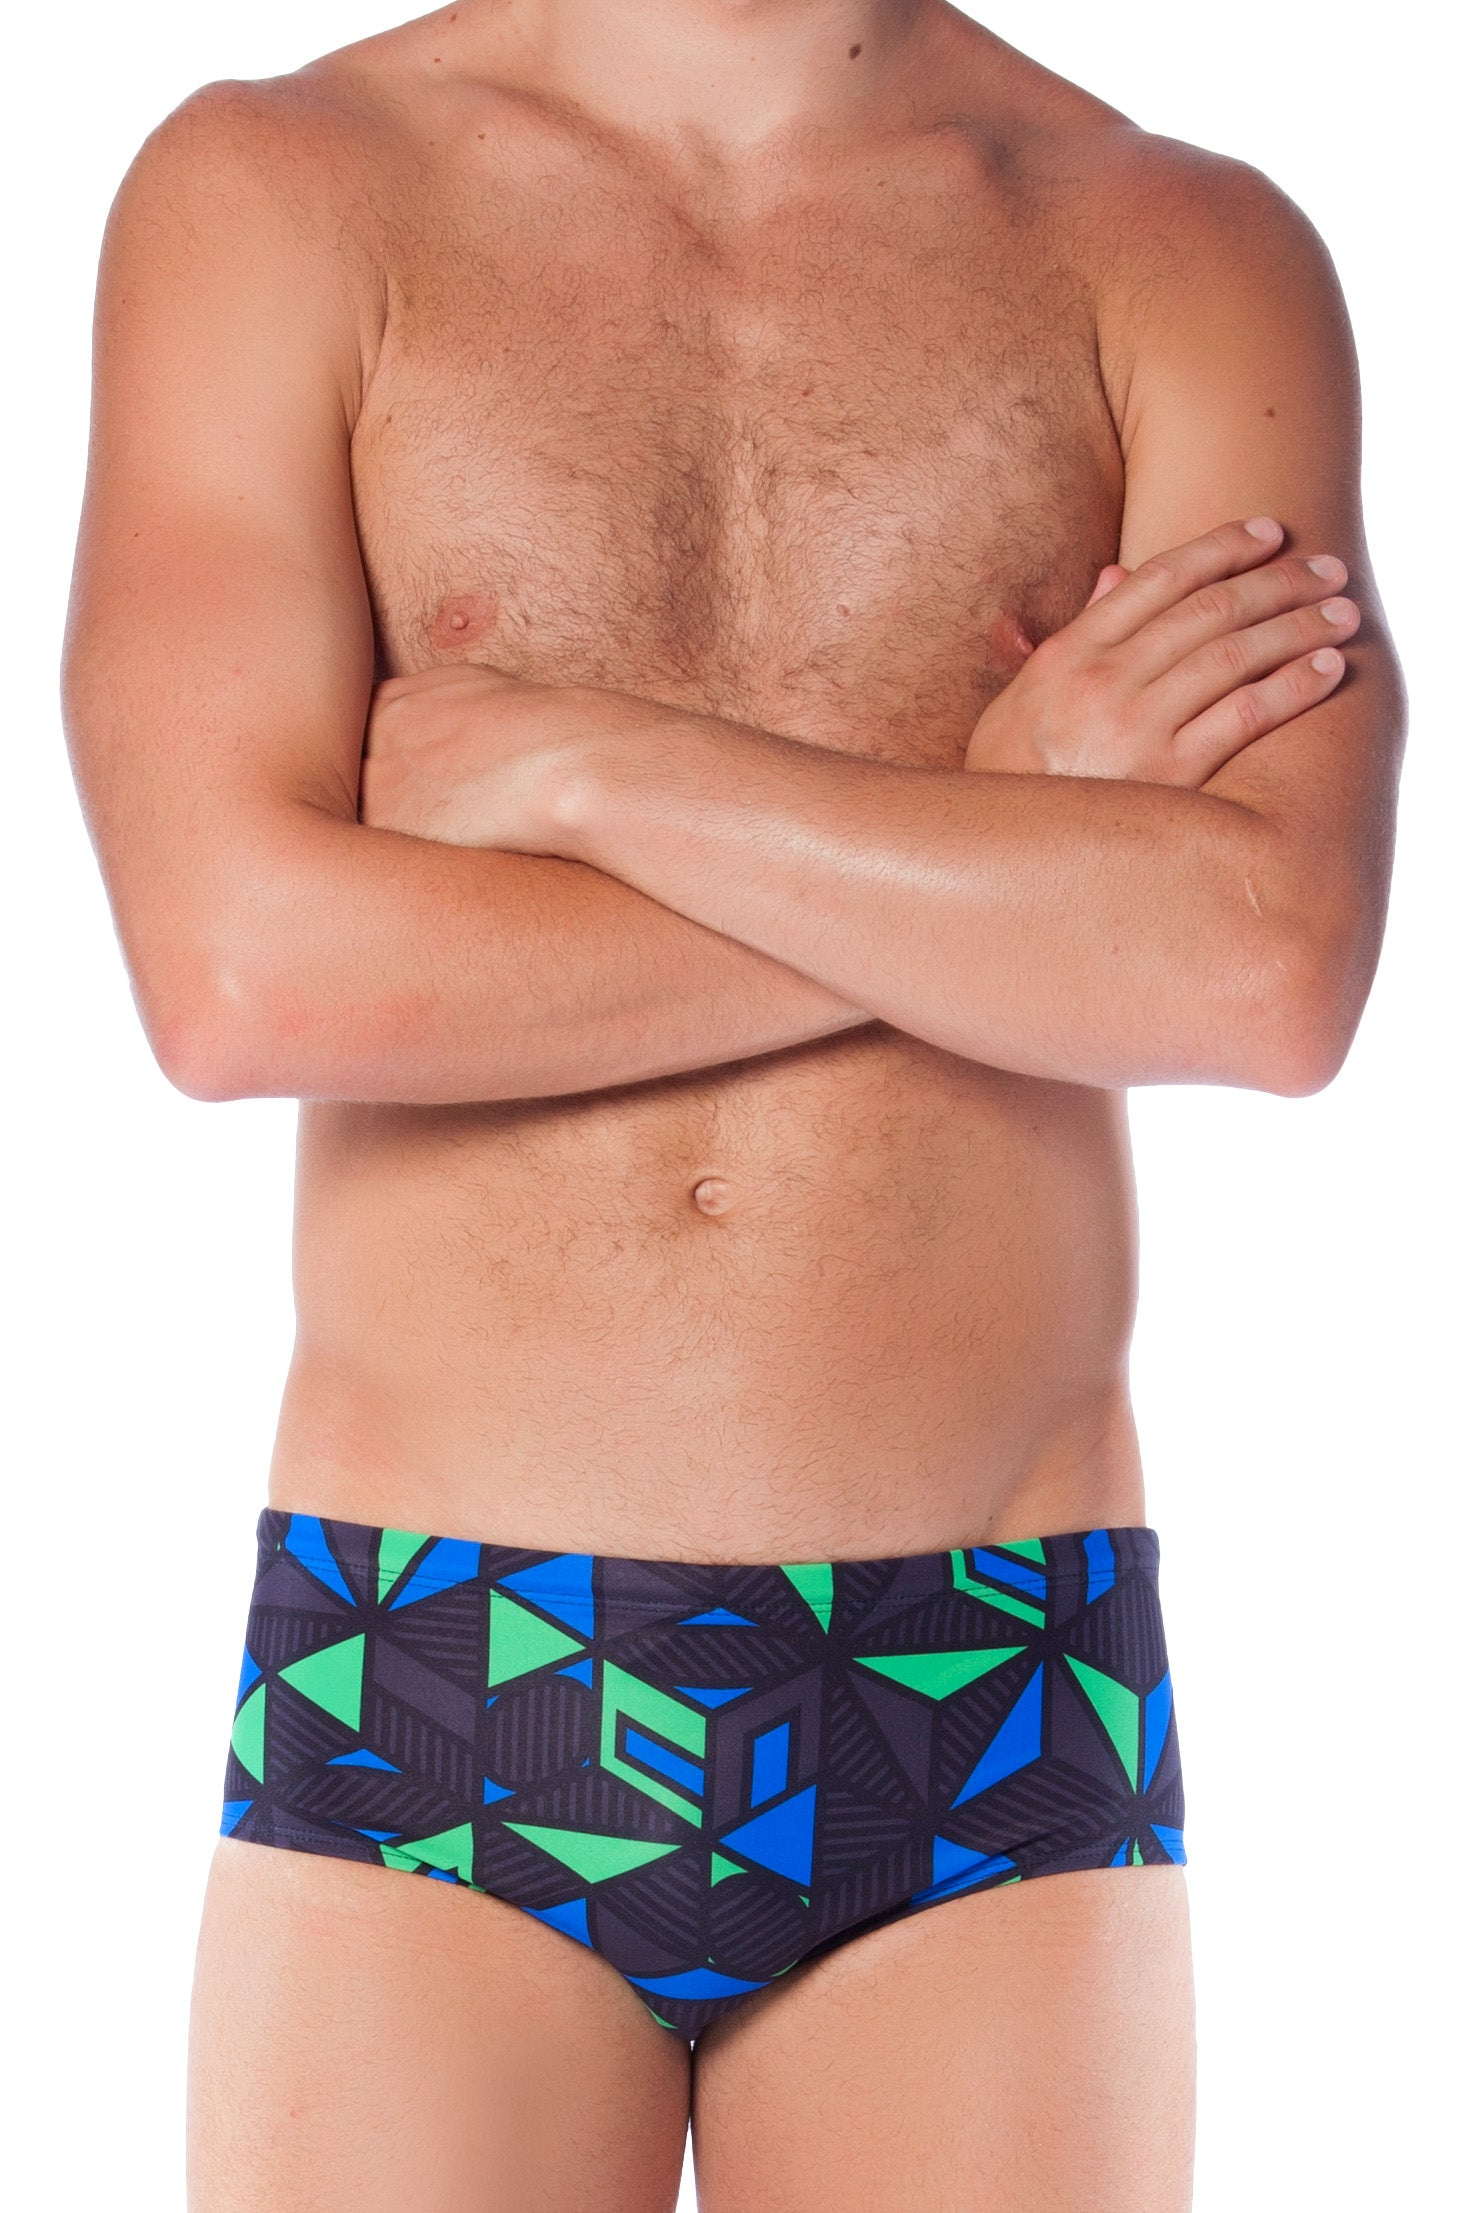 Rebel Rouser - Mens XS Only Men's Briefs - Shop Zealous Training Swimwear